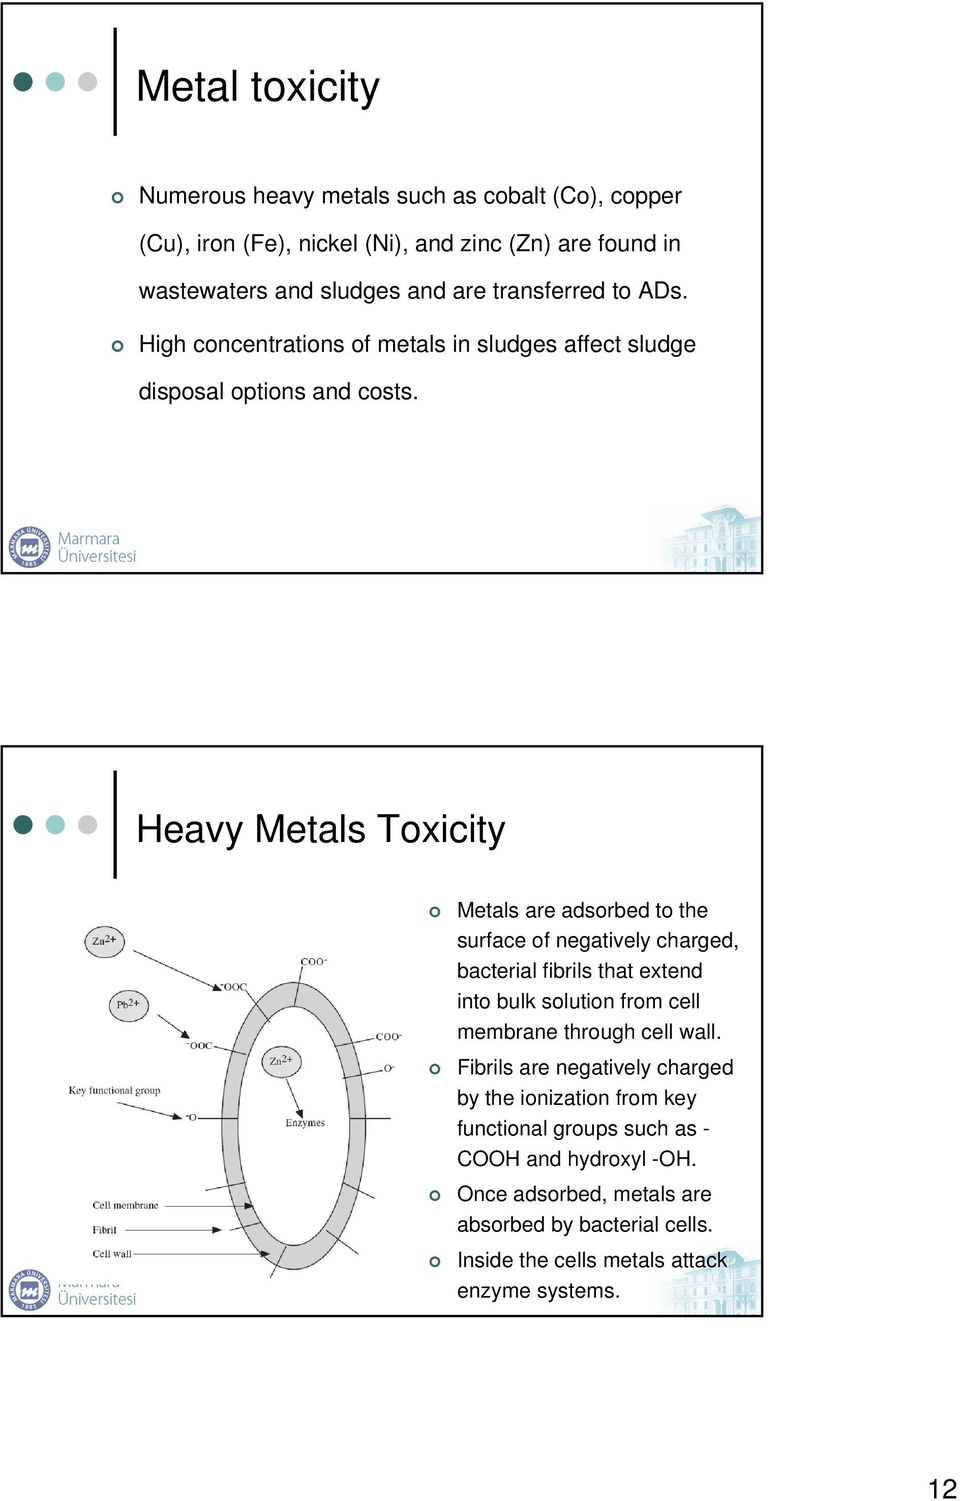 Heavy Metals Toxicity Metals are adsorbed to the surface of negatively charged, bacterial fibrils that extend into bulk solution from cell membrane through